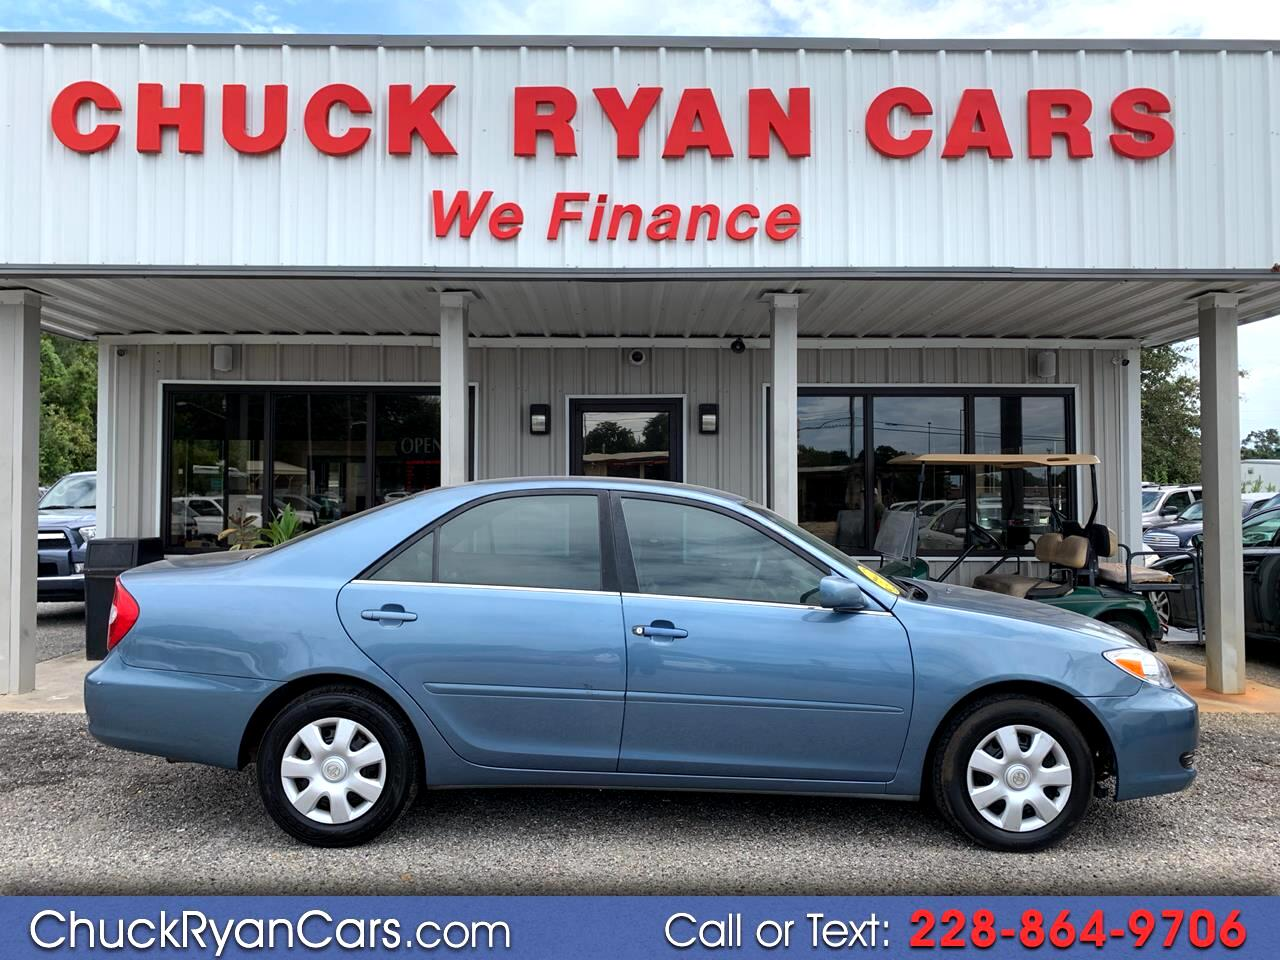 2004 Toyota Camry 4dr Sdn LE Manual (Natl)